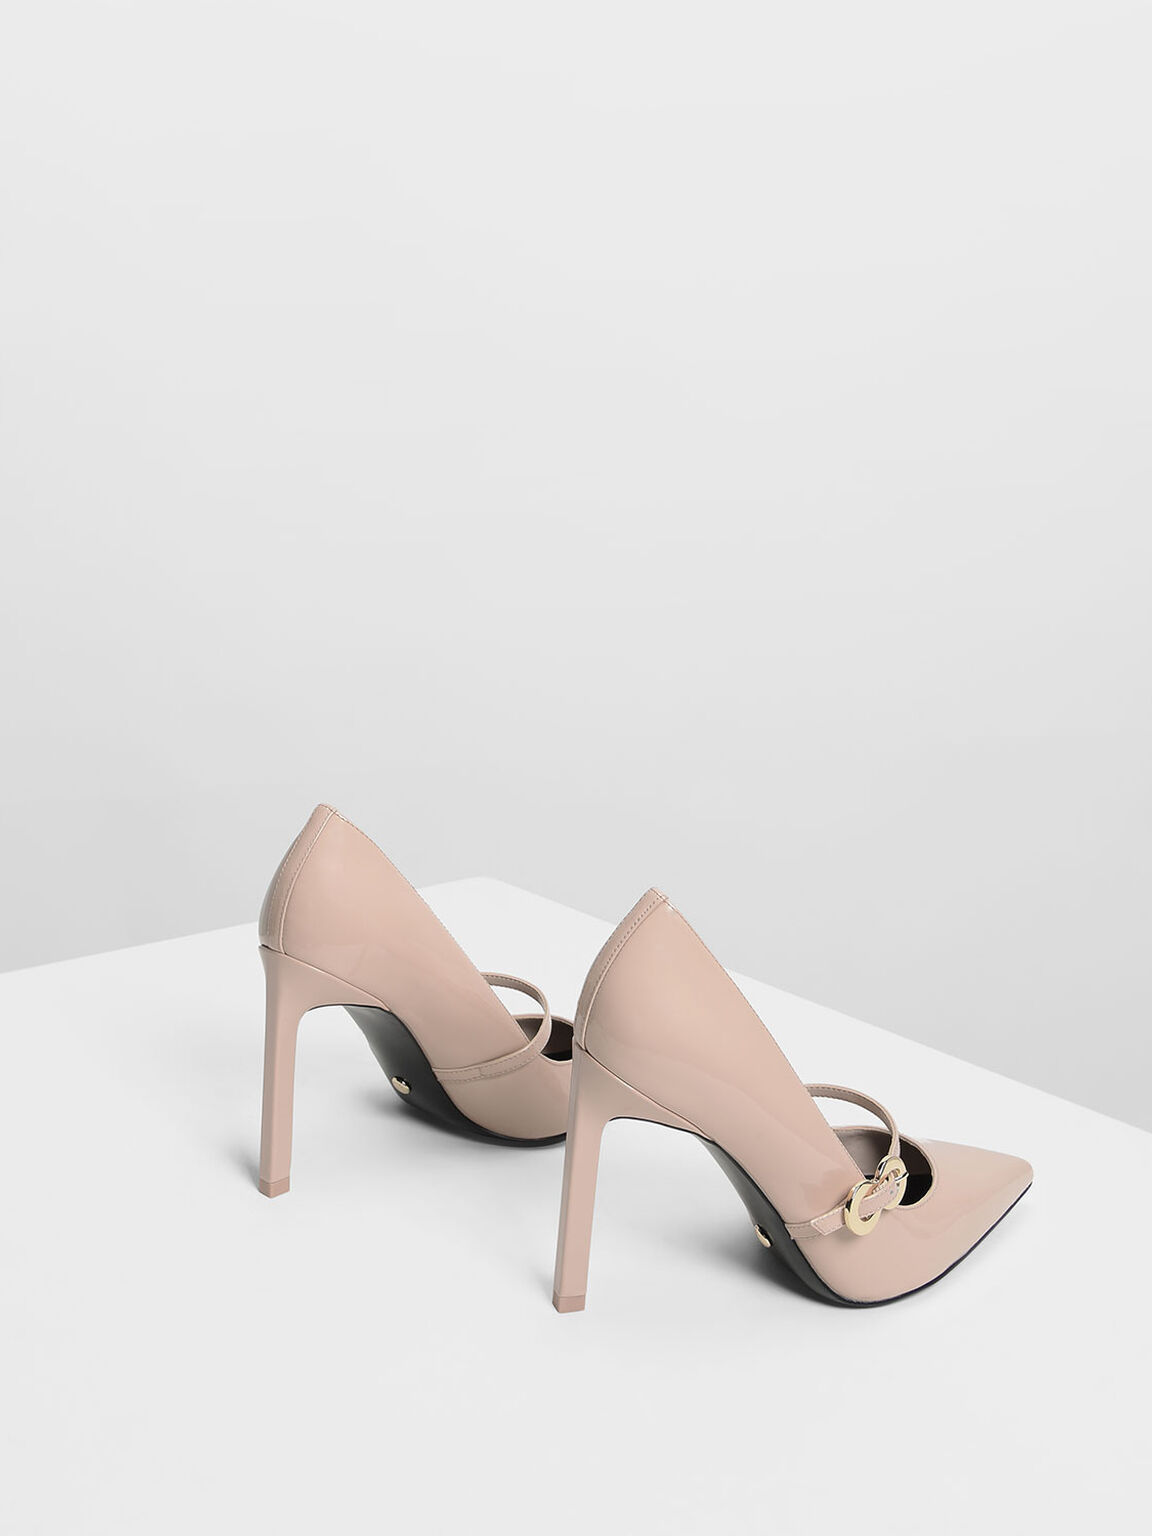 Leather Infinity Buckle Mary Jane Pumps, Nude, hi-res